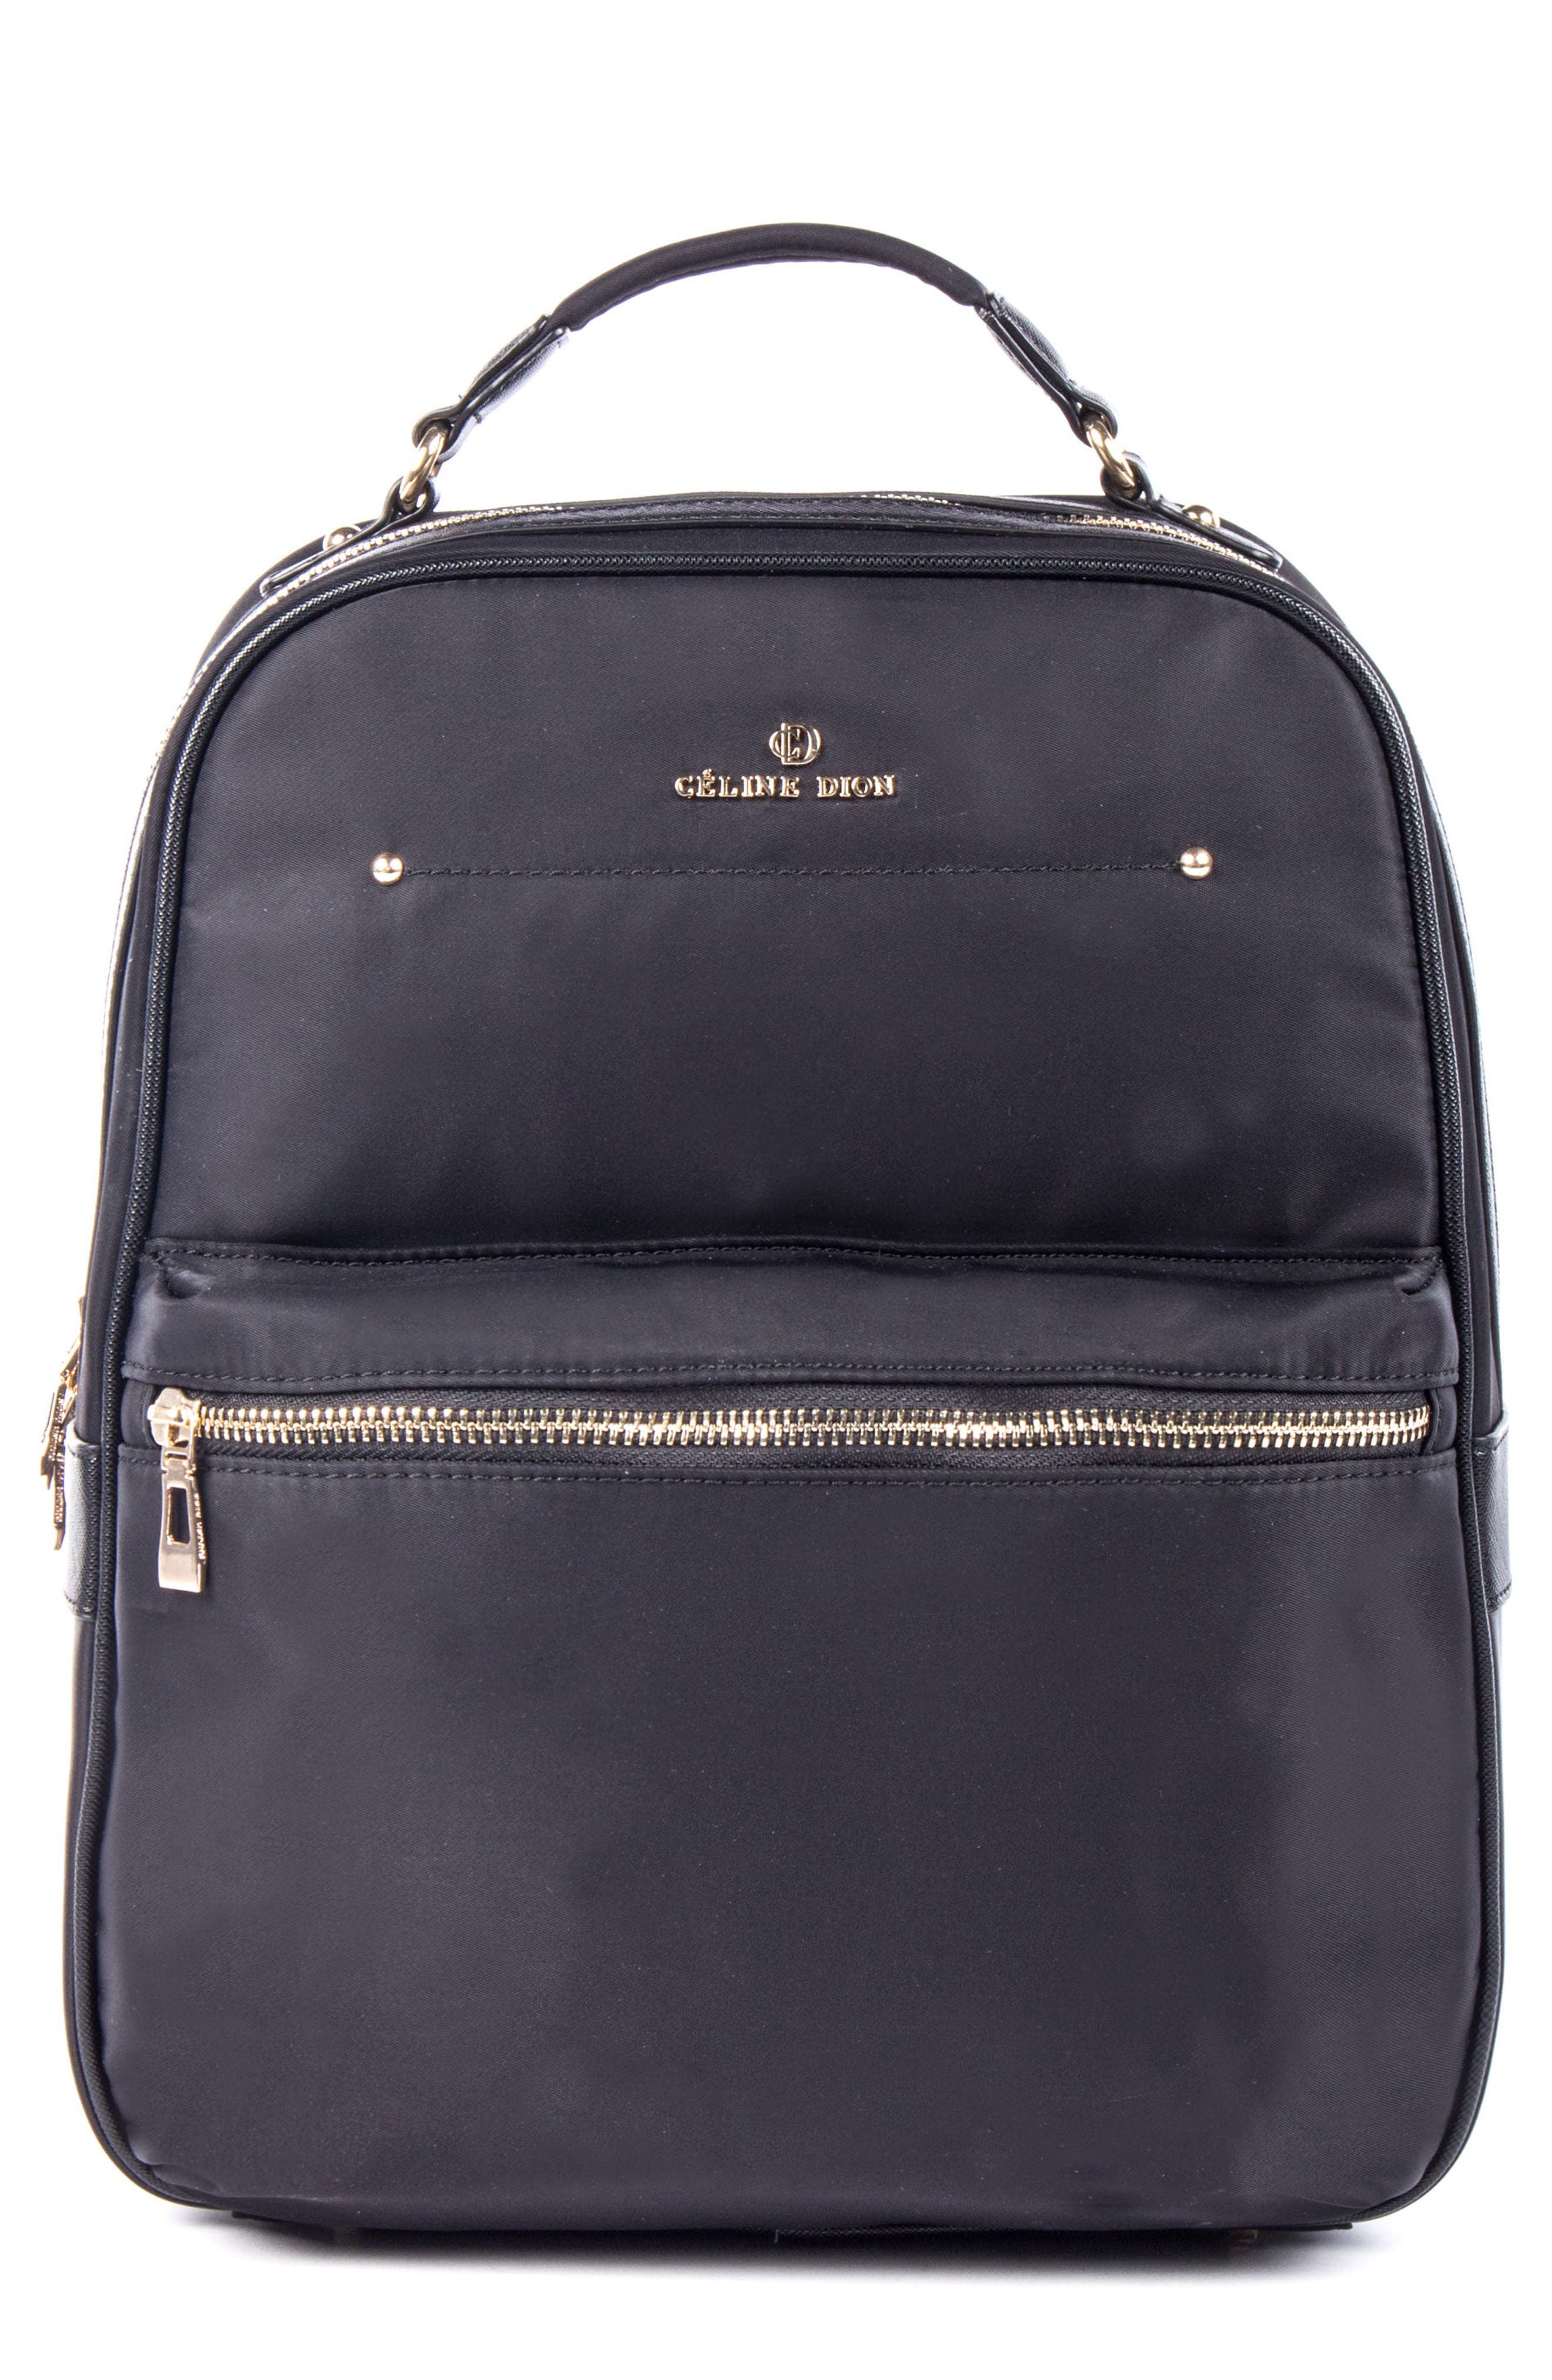 Céline Dion Presto Nylon Backpack,                             Main thumbnail 1, color,